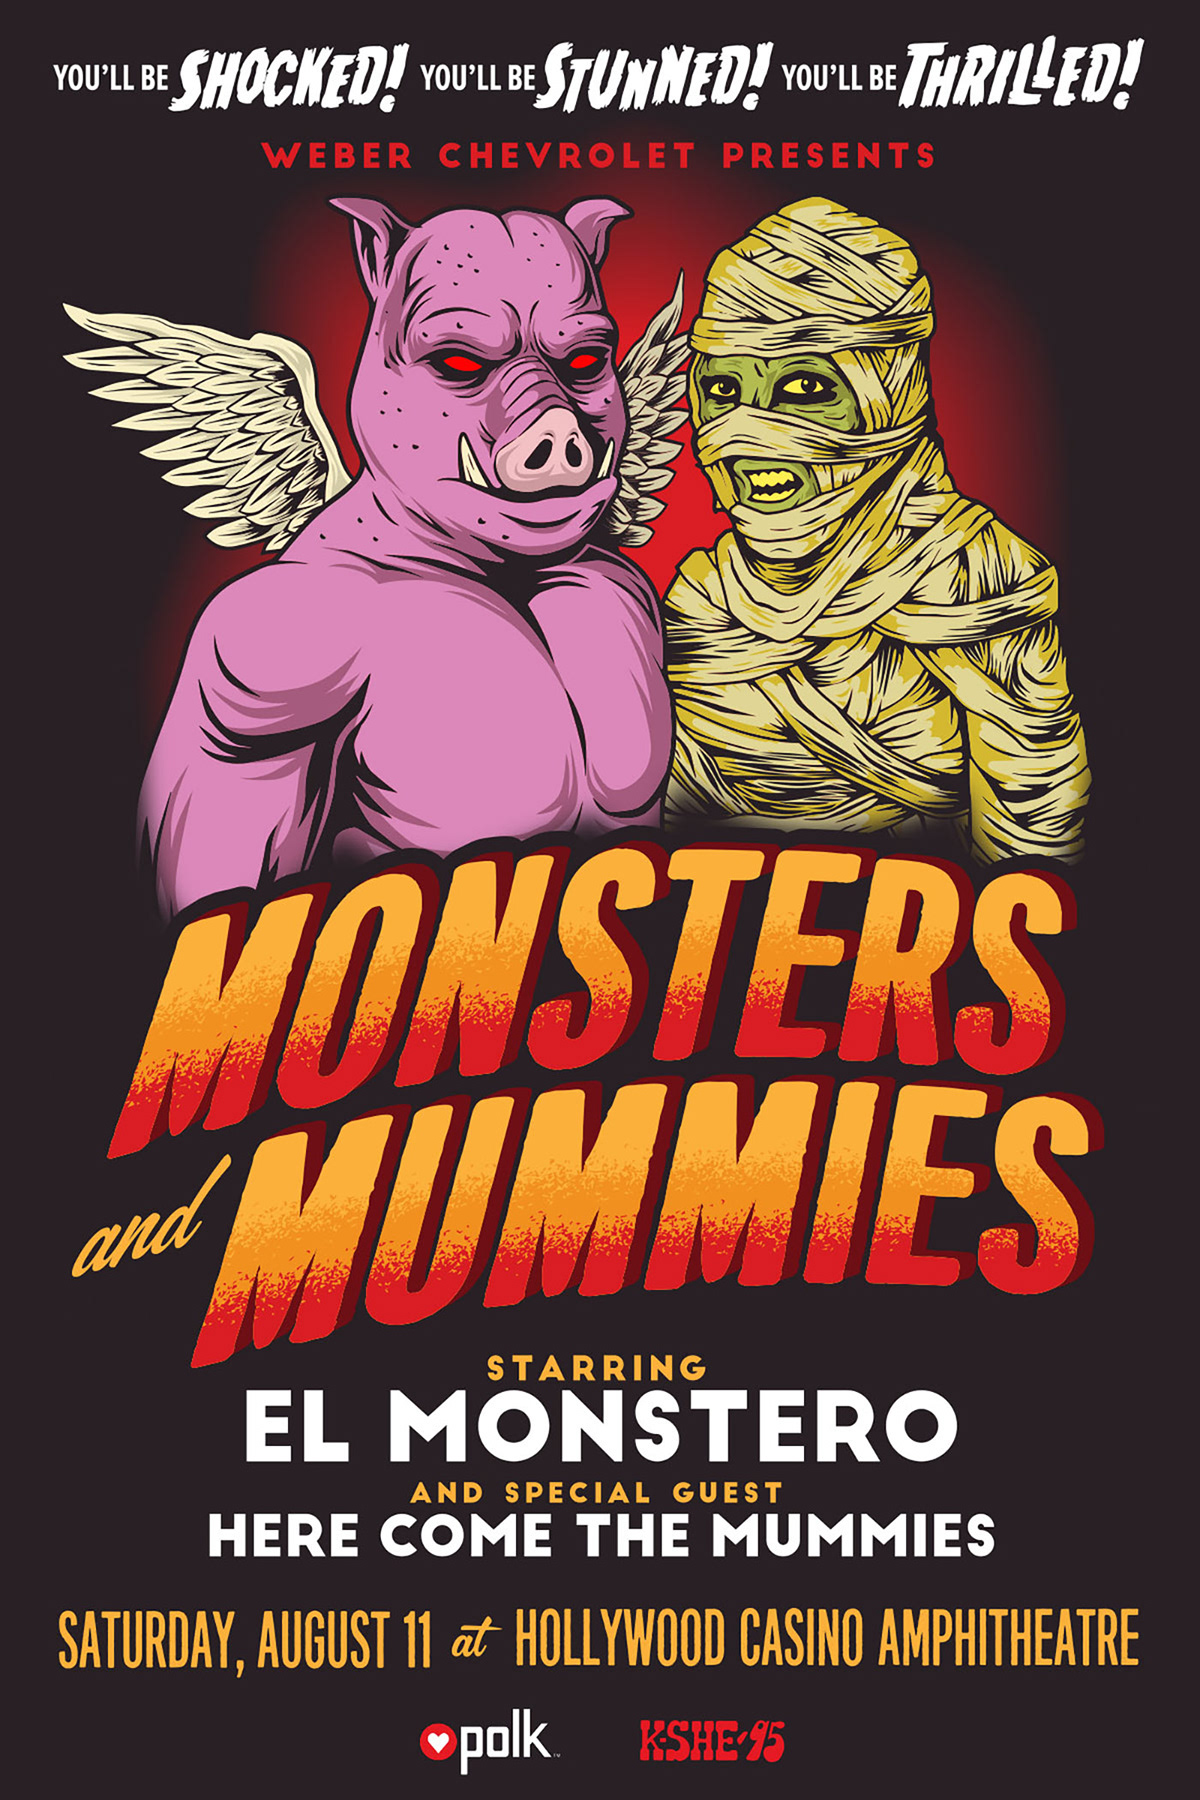 pink floyd el monstero Here Come the Mummies GigPoster